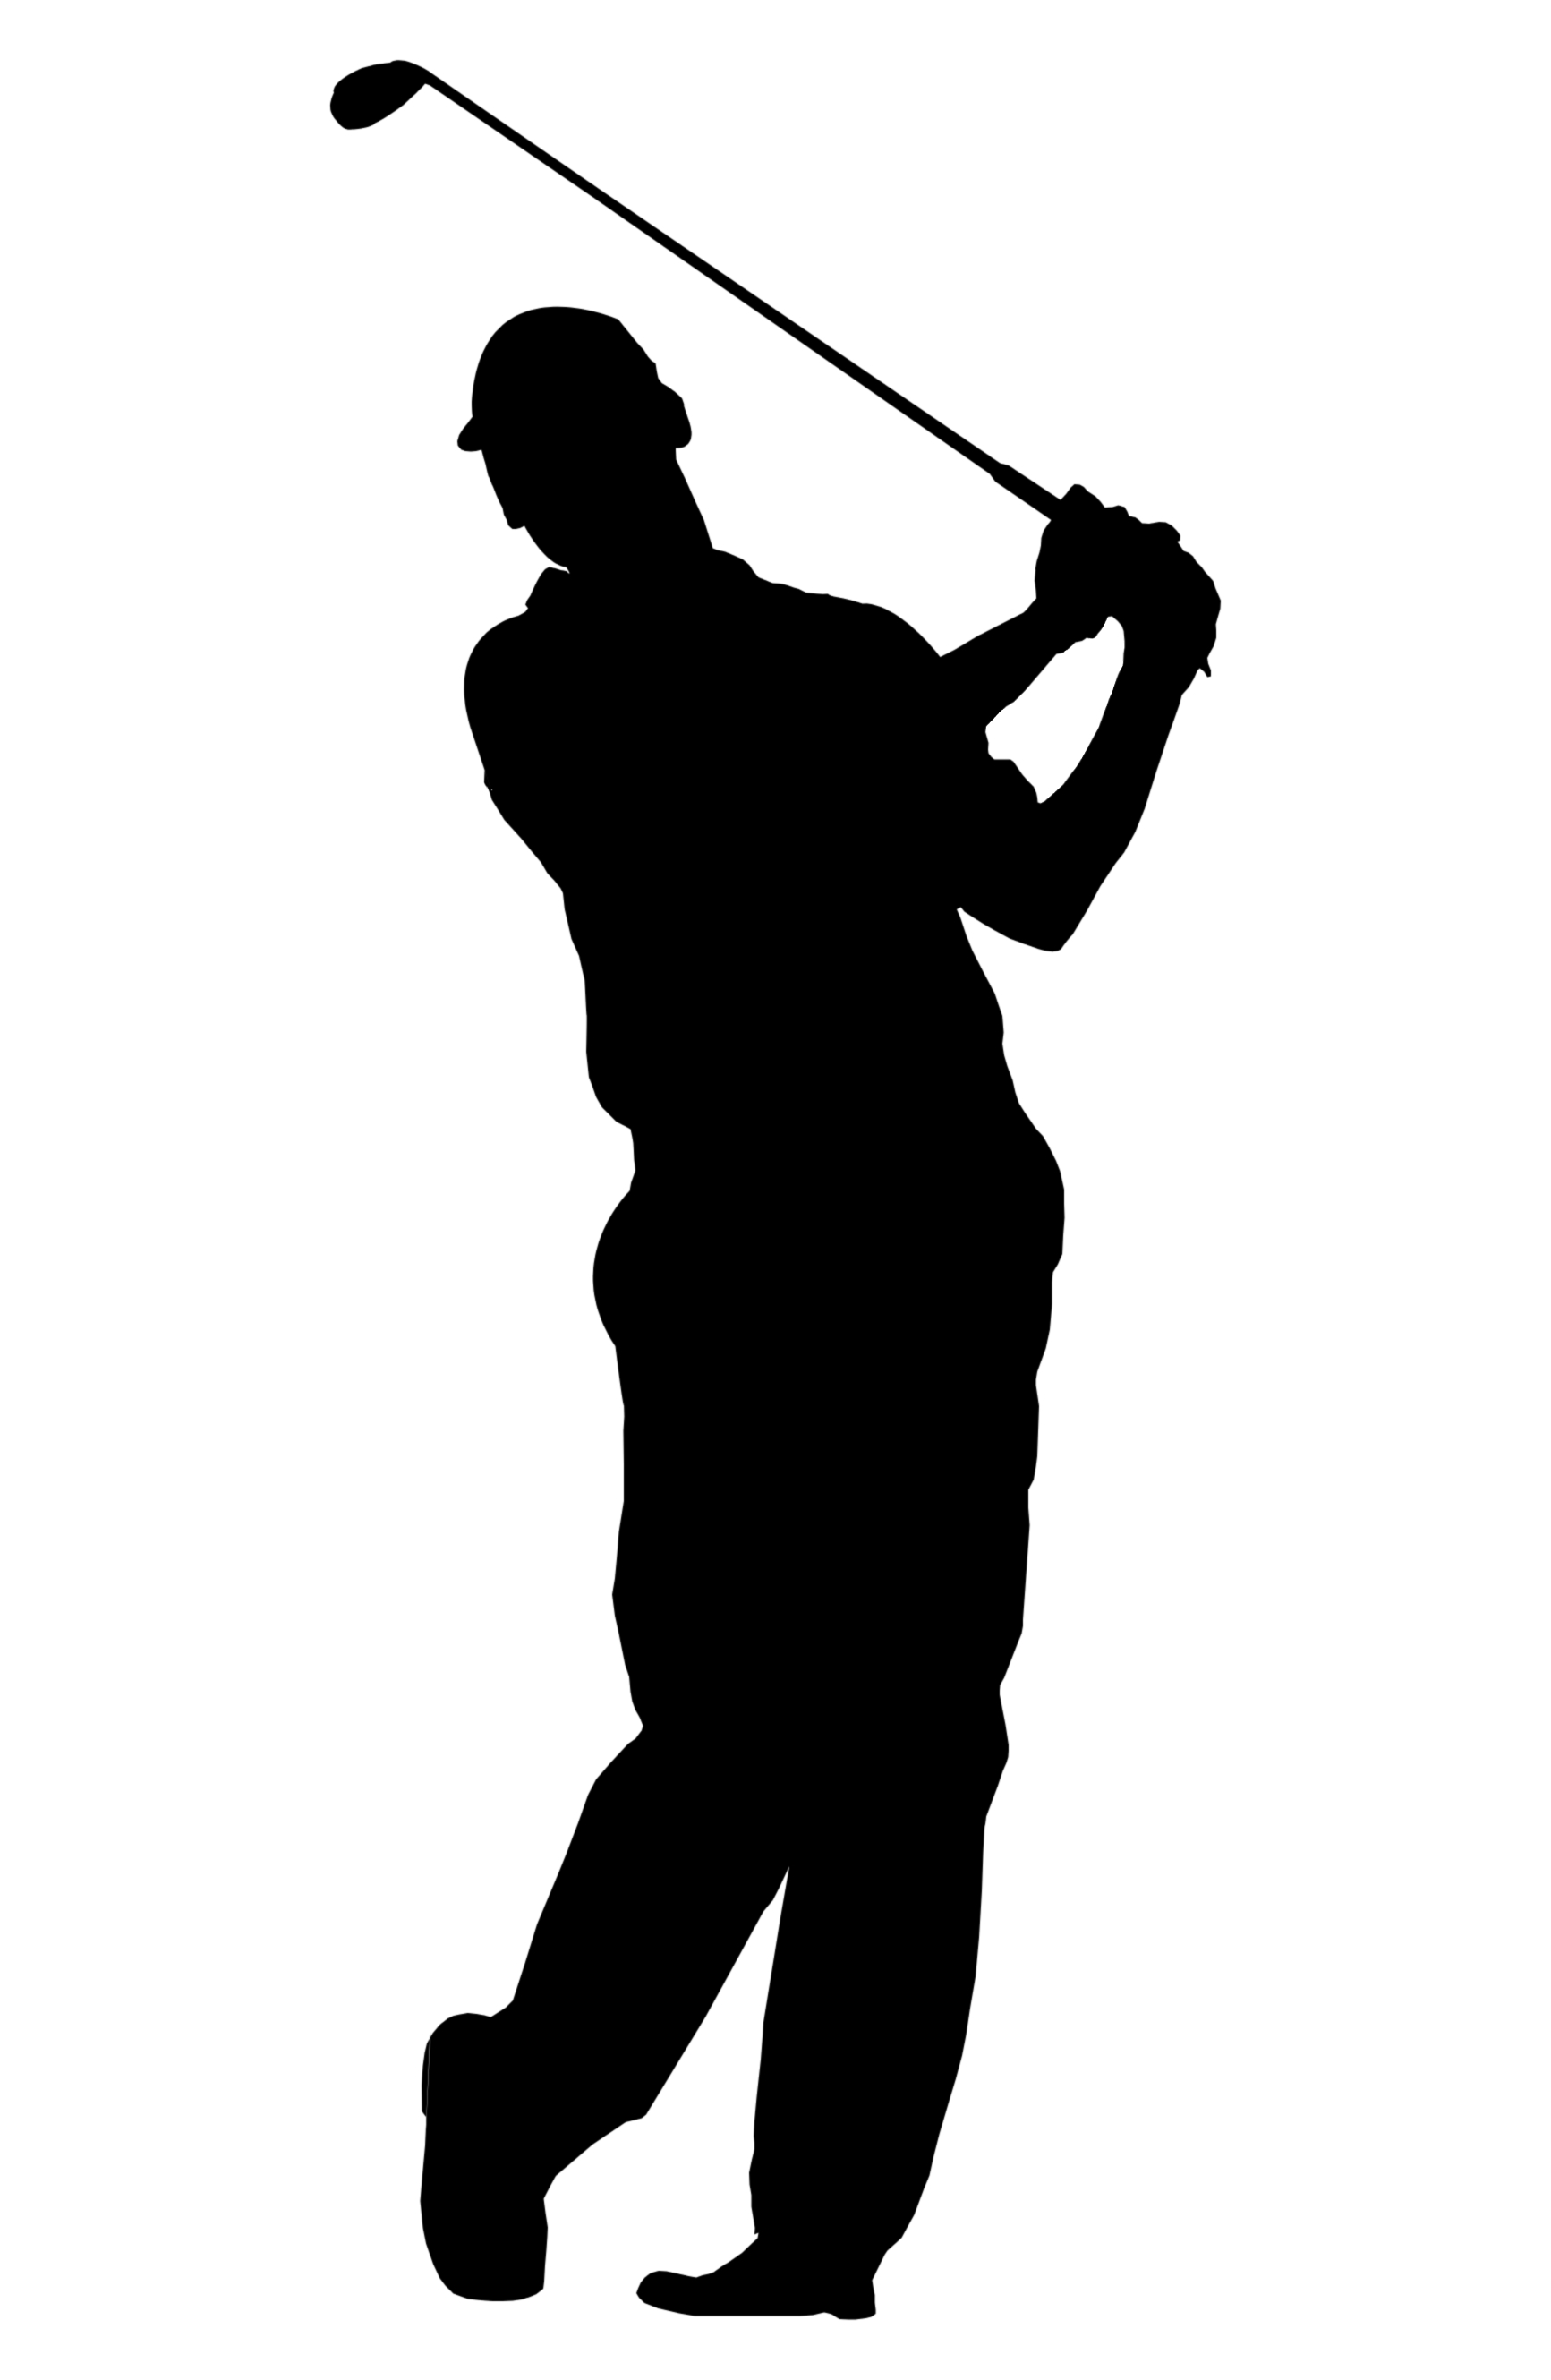 Golfer free golf clipart images graphics animated - ClipartPost picture library stock